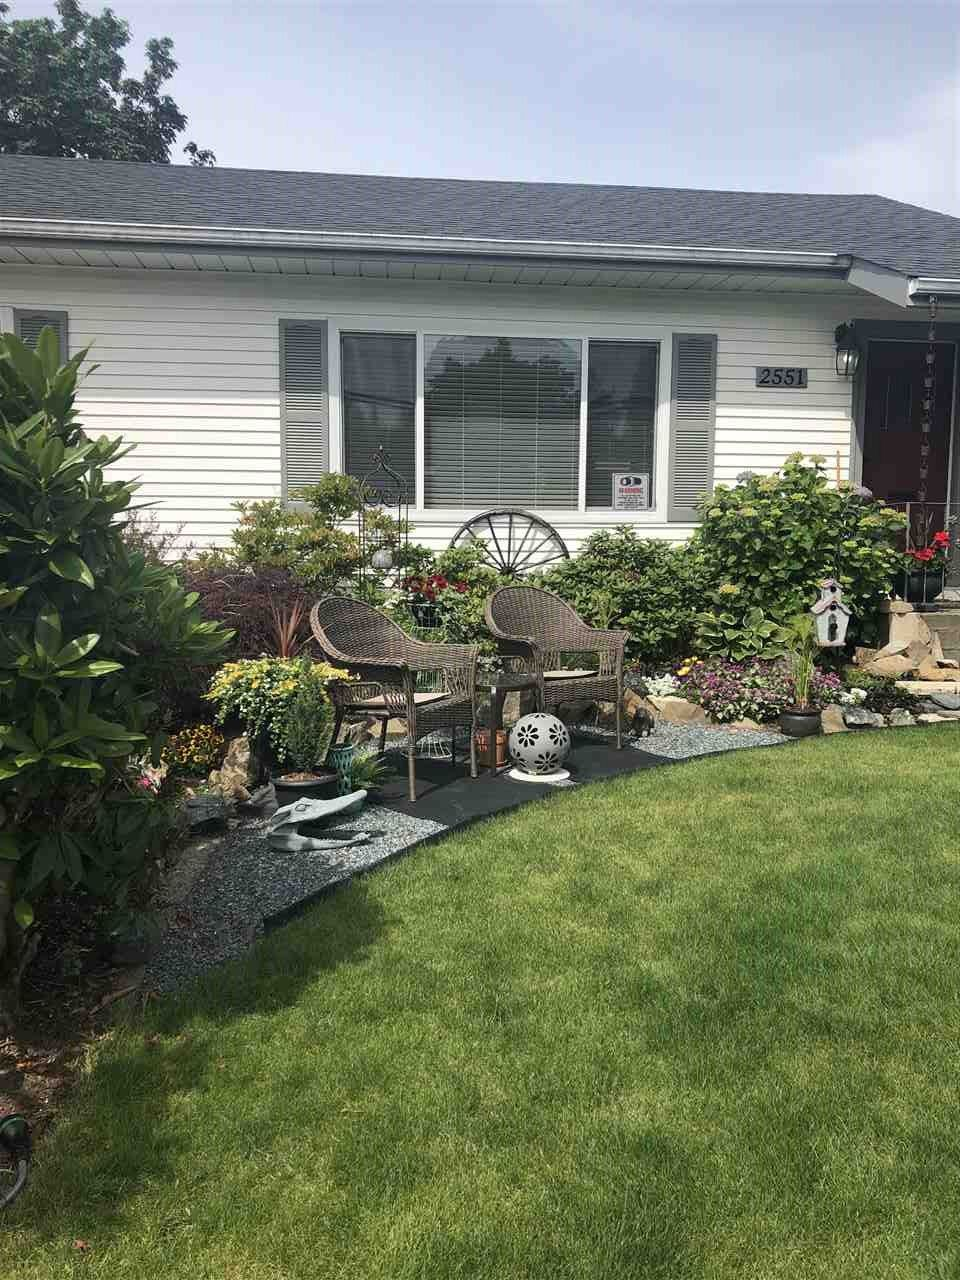 Photo 32: Photos: 2551 PARK Drive in Abbotsford: Central Abbotsford House for sale : MLS®# R2533422